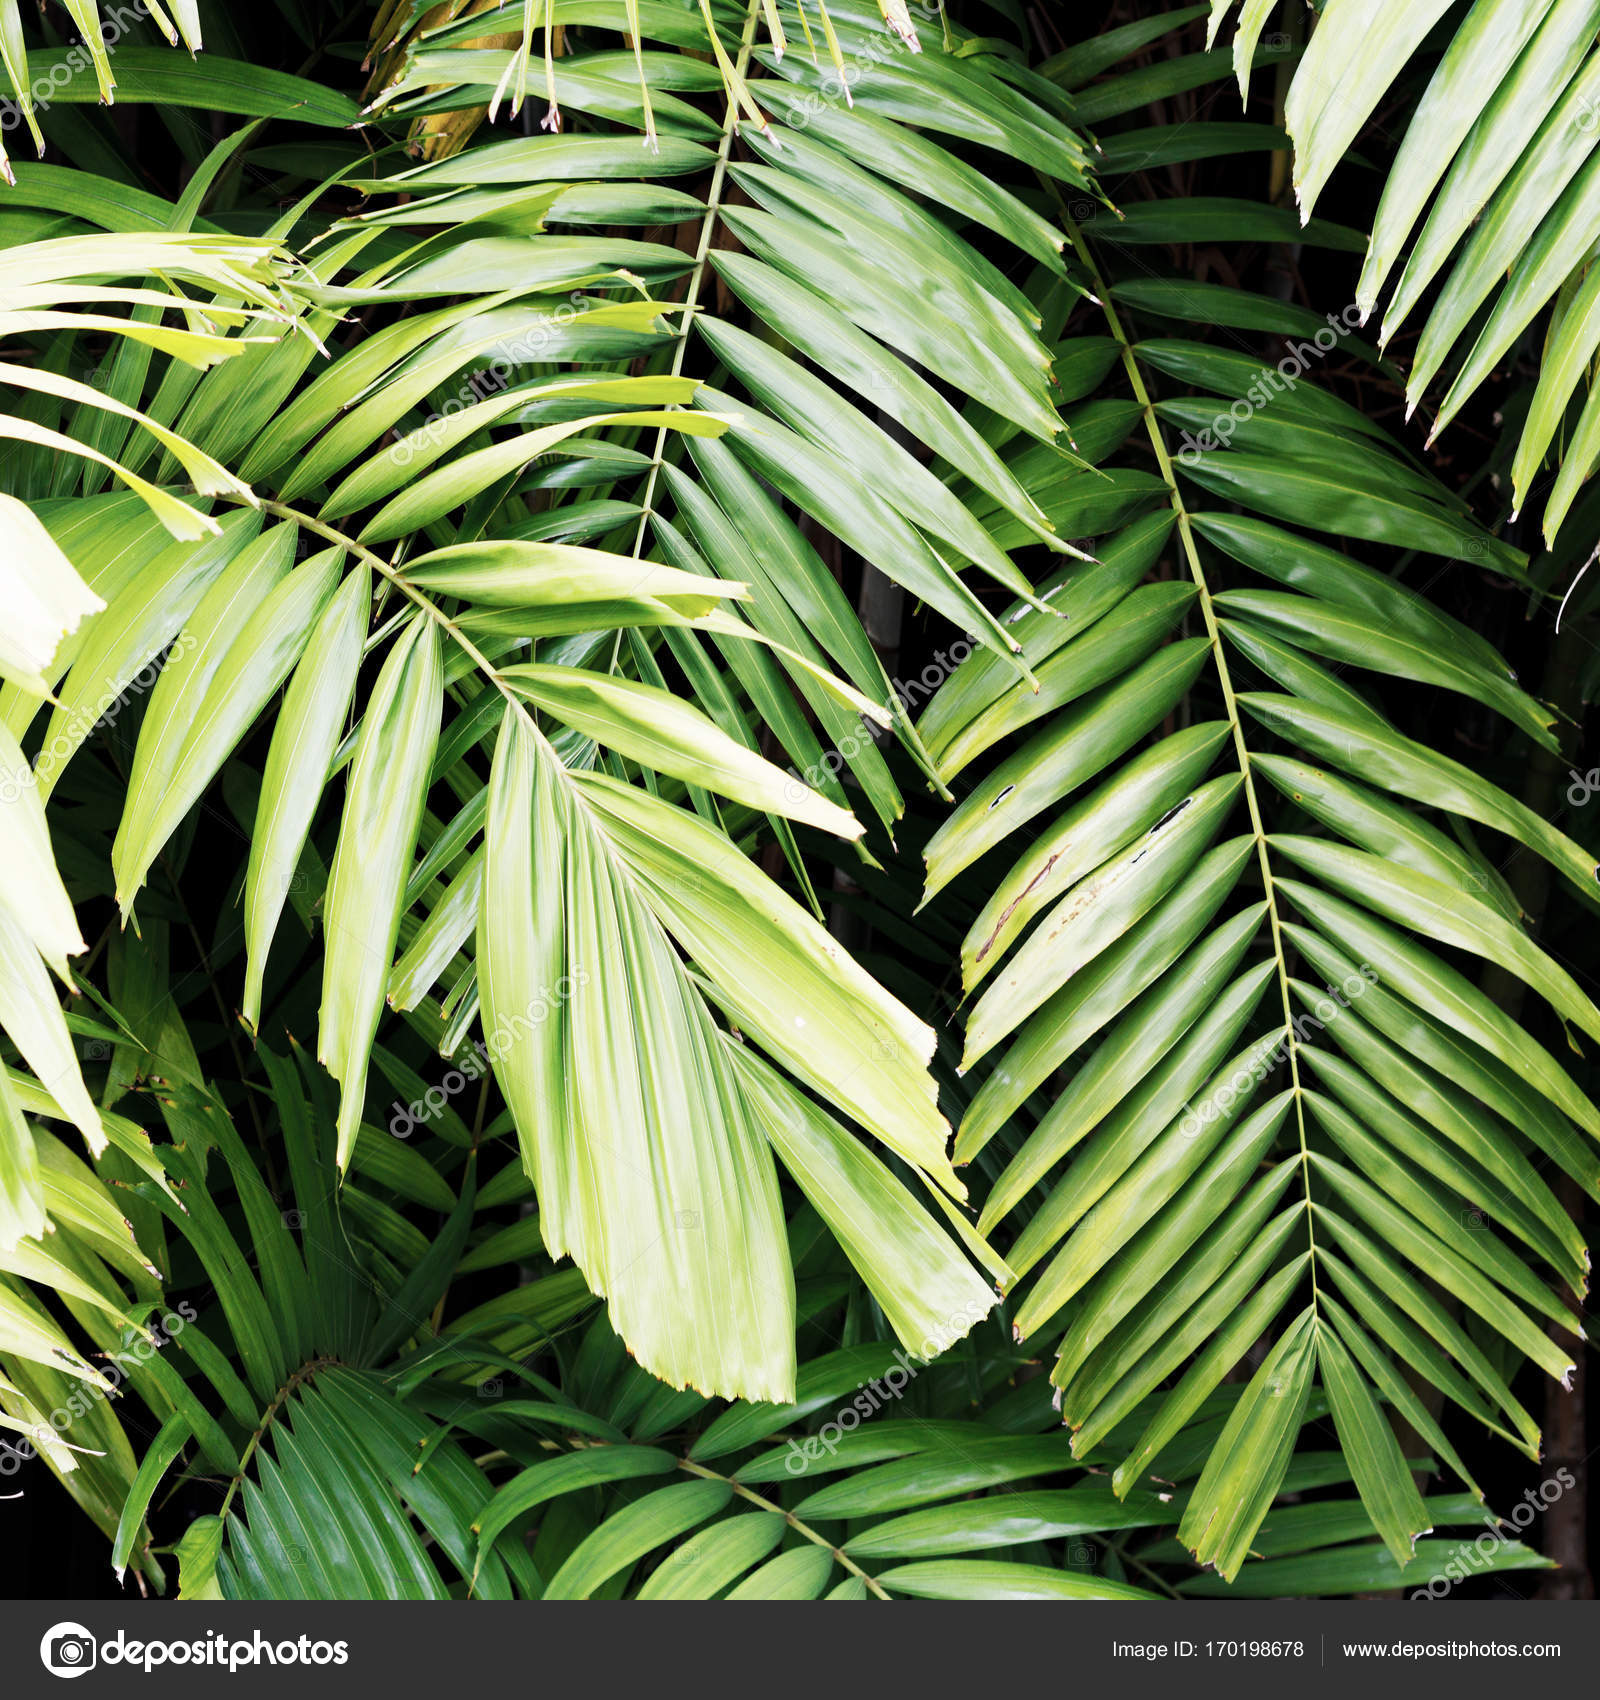 Minimal Style Minimalist Fashion Photography Tropical Leaves Stock Photo C Looking 2 The Sky 170198678 Tropical leaves a project by ilinca. https depositphotos com 170198678 stock photo minimal style minimalist fashion photography html